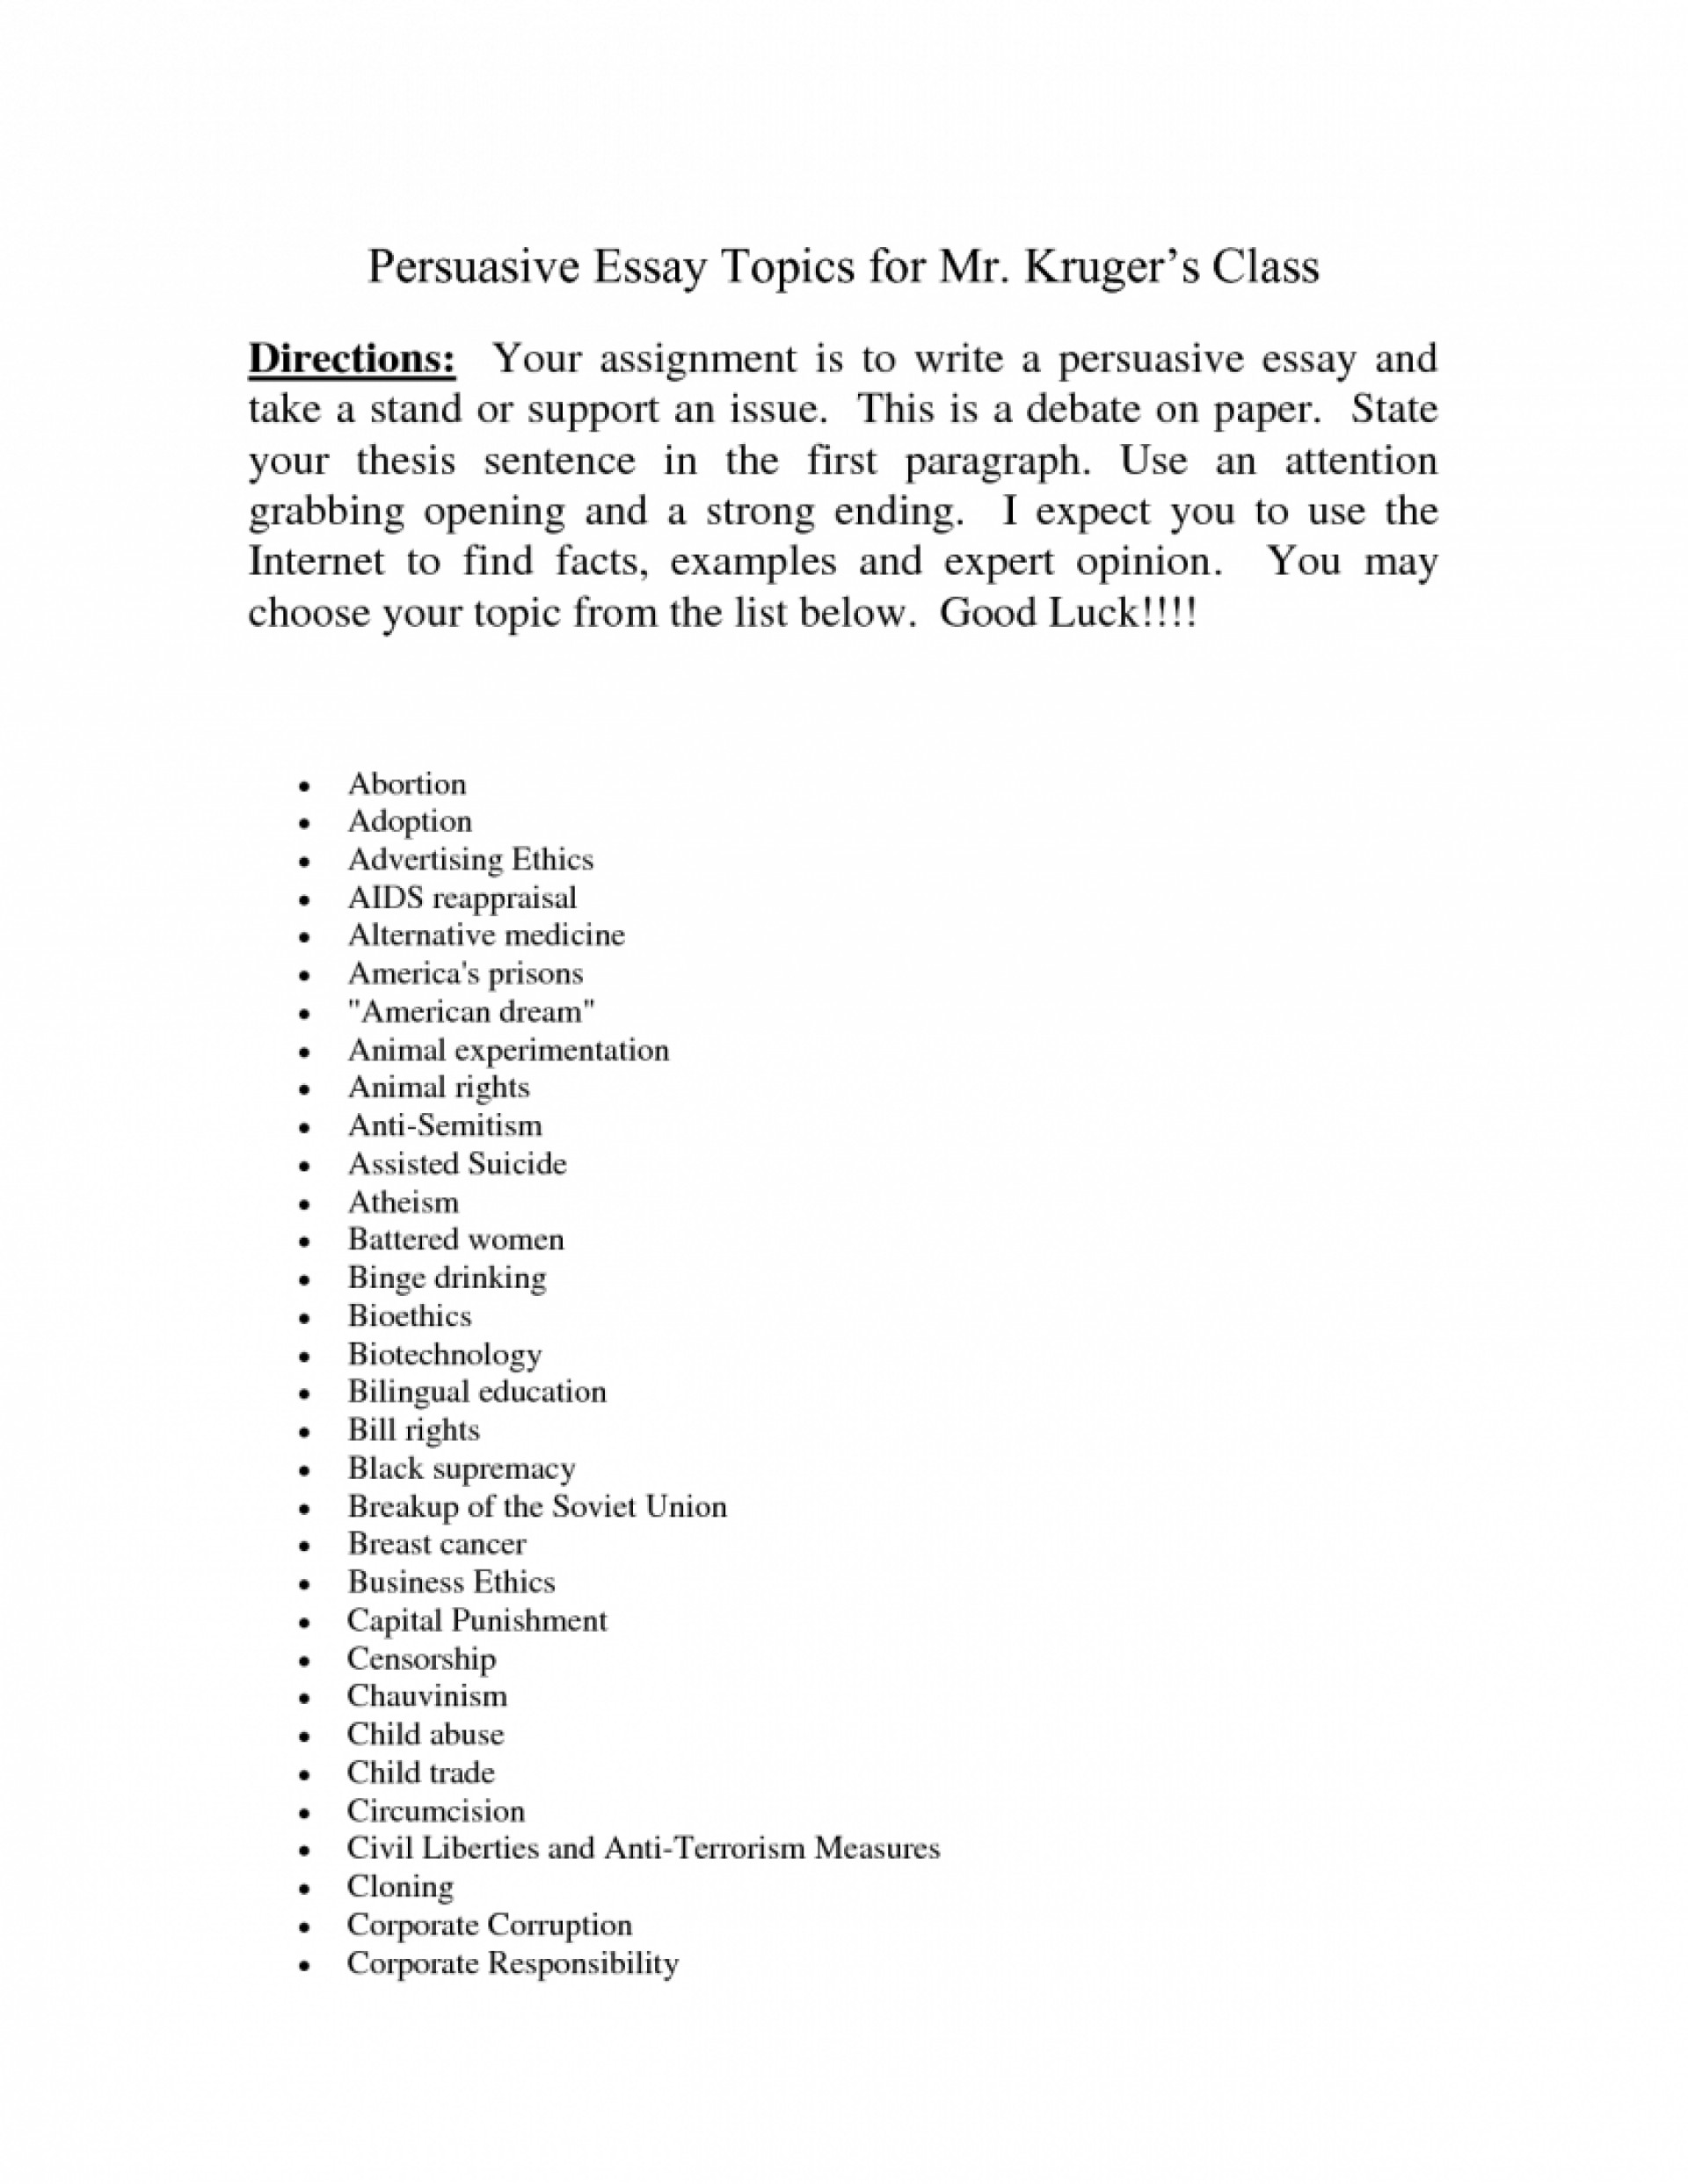 024 Essay Opinion Ppt On Counselling Historych Paper Persuasive Sample Awesome Collection Of Strong Argumentative Topics Best List Topic For 840x1087 Awful Research Medical Easy 1920